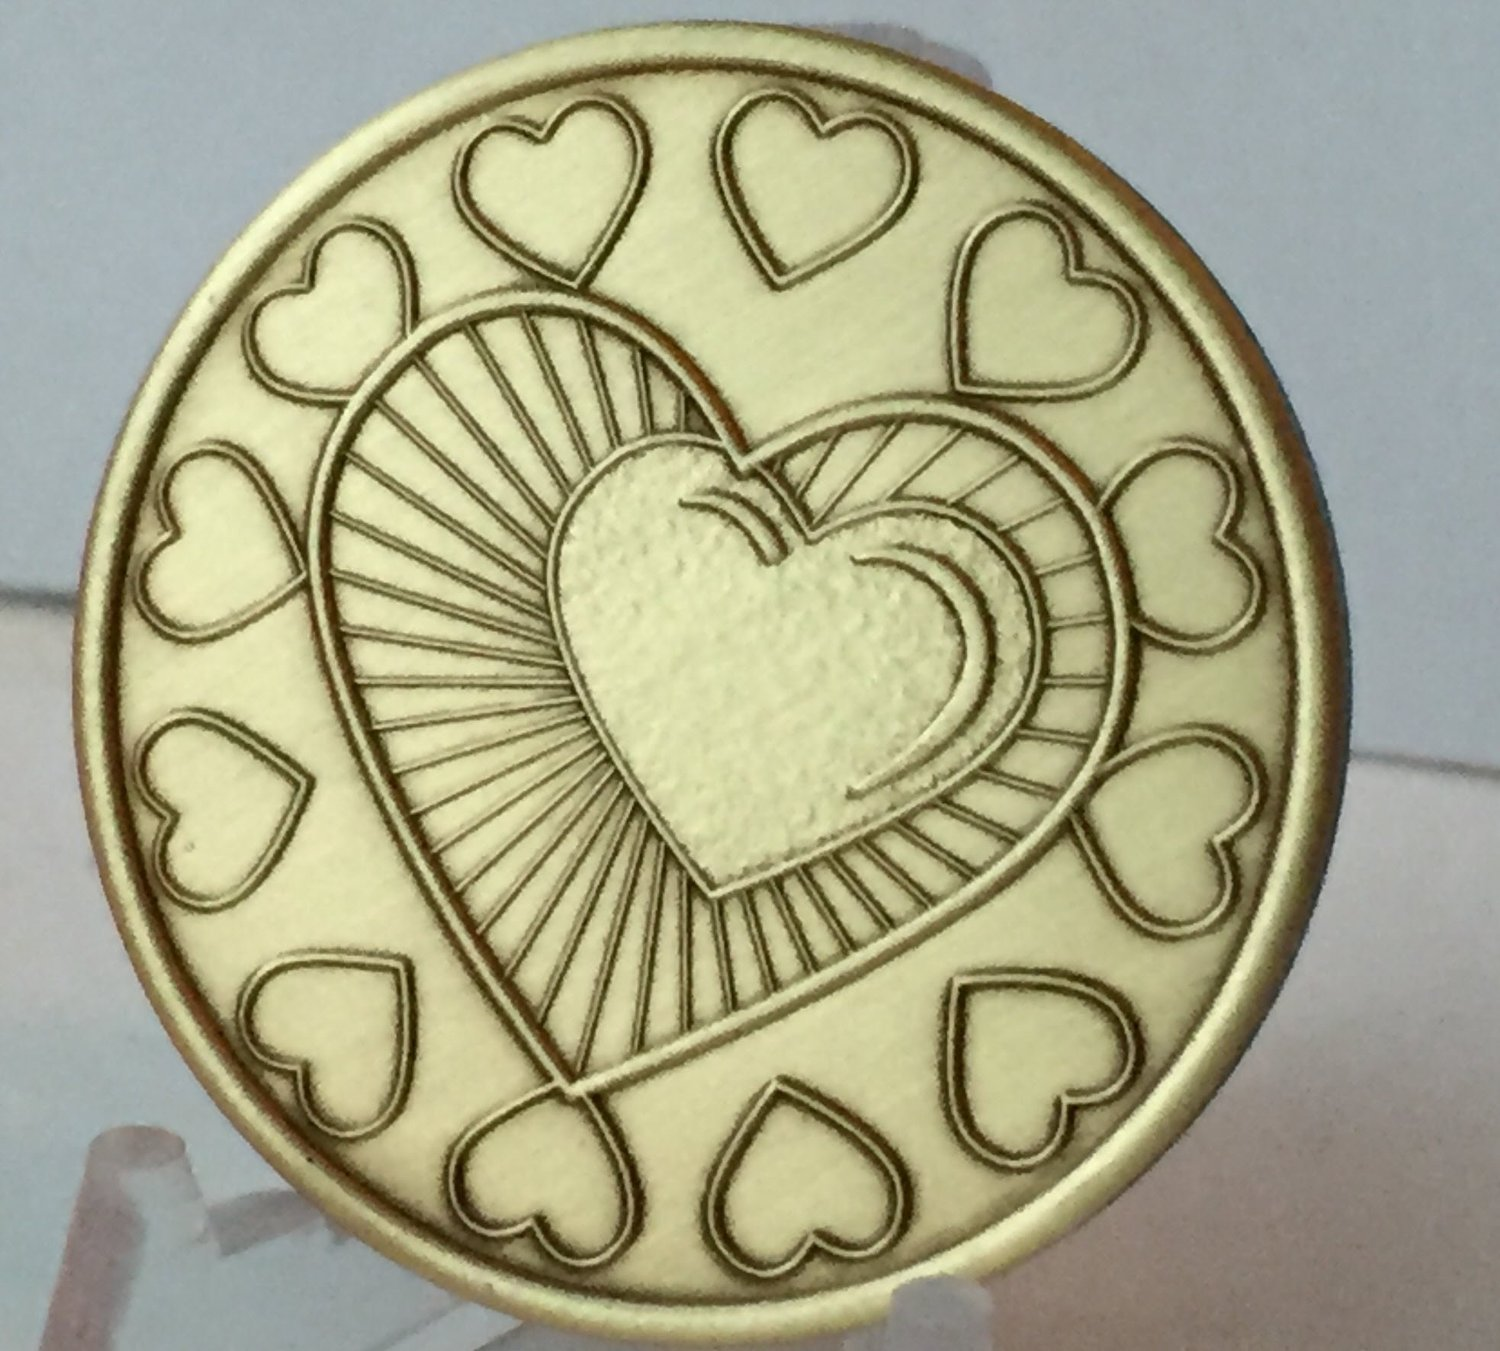 My Heart Is In Recovery Bulk Lot of 25 Medallions Bronze One Day At A Time Chips by wendells (Image #2)